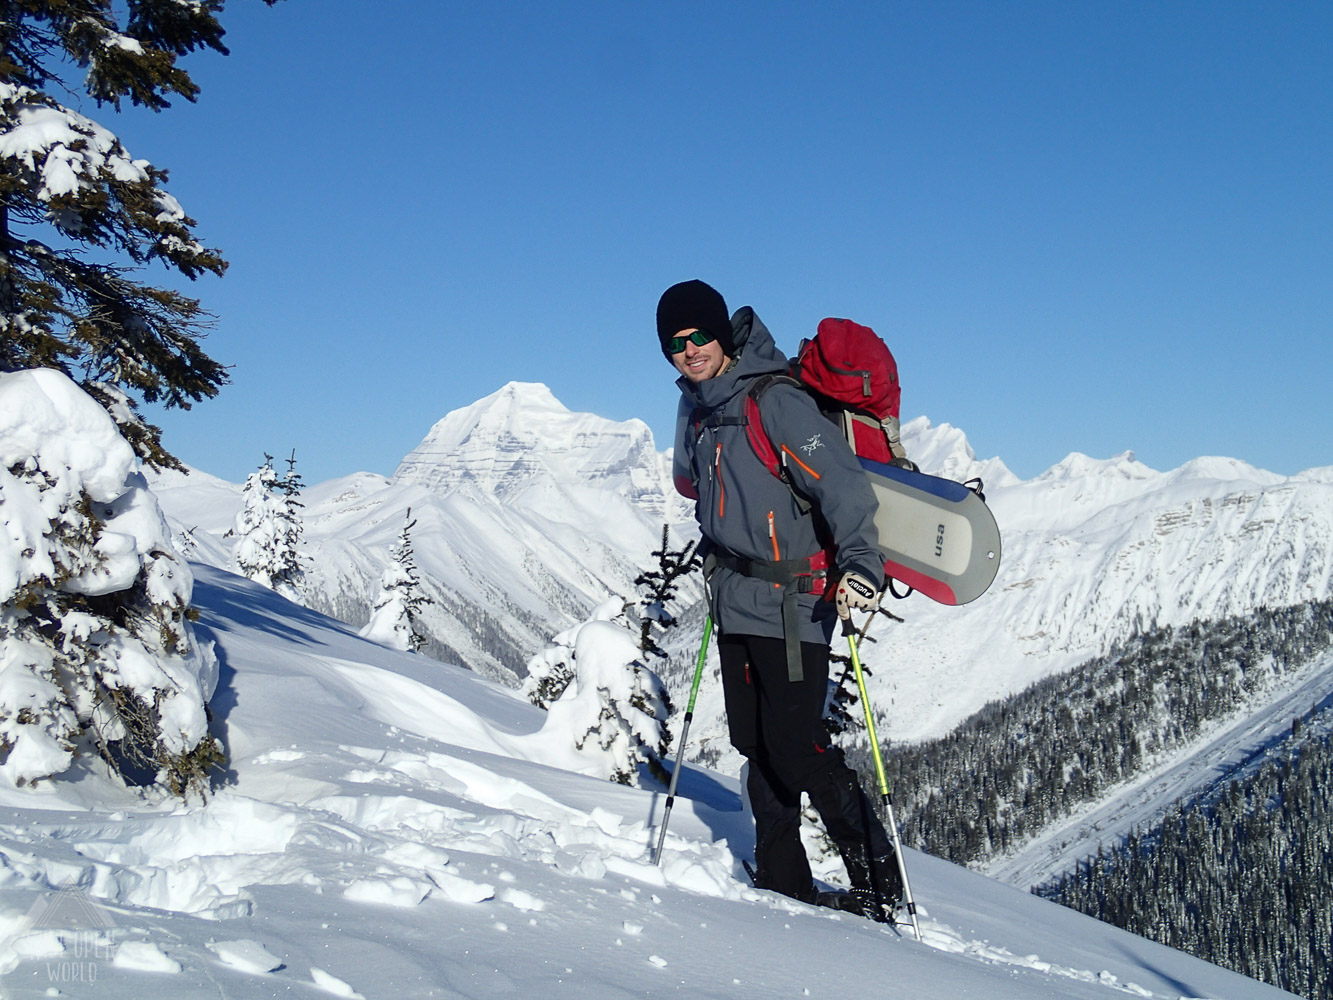 Snowshoeing the meadow with a view of Mount Robson in the background.